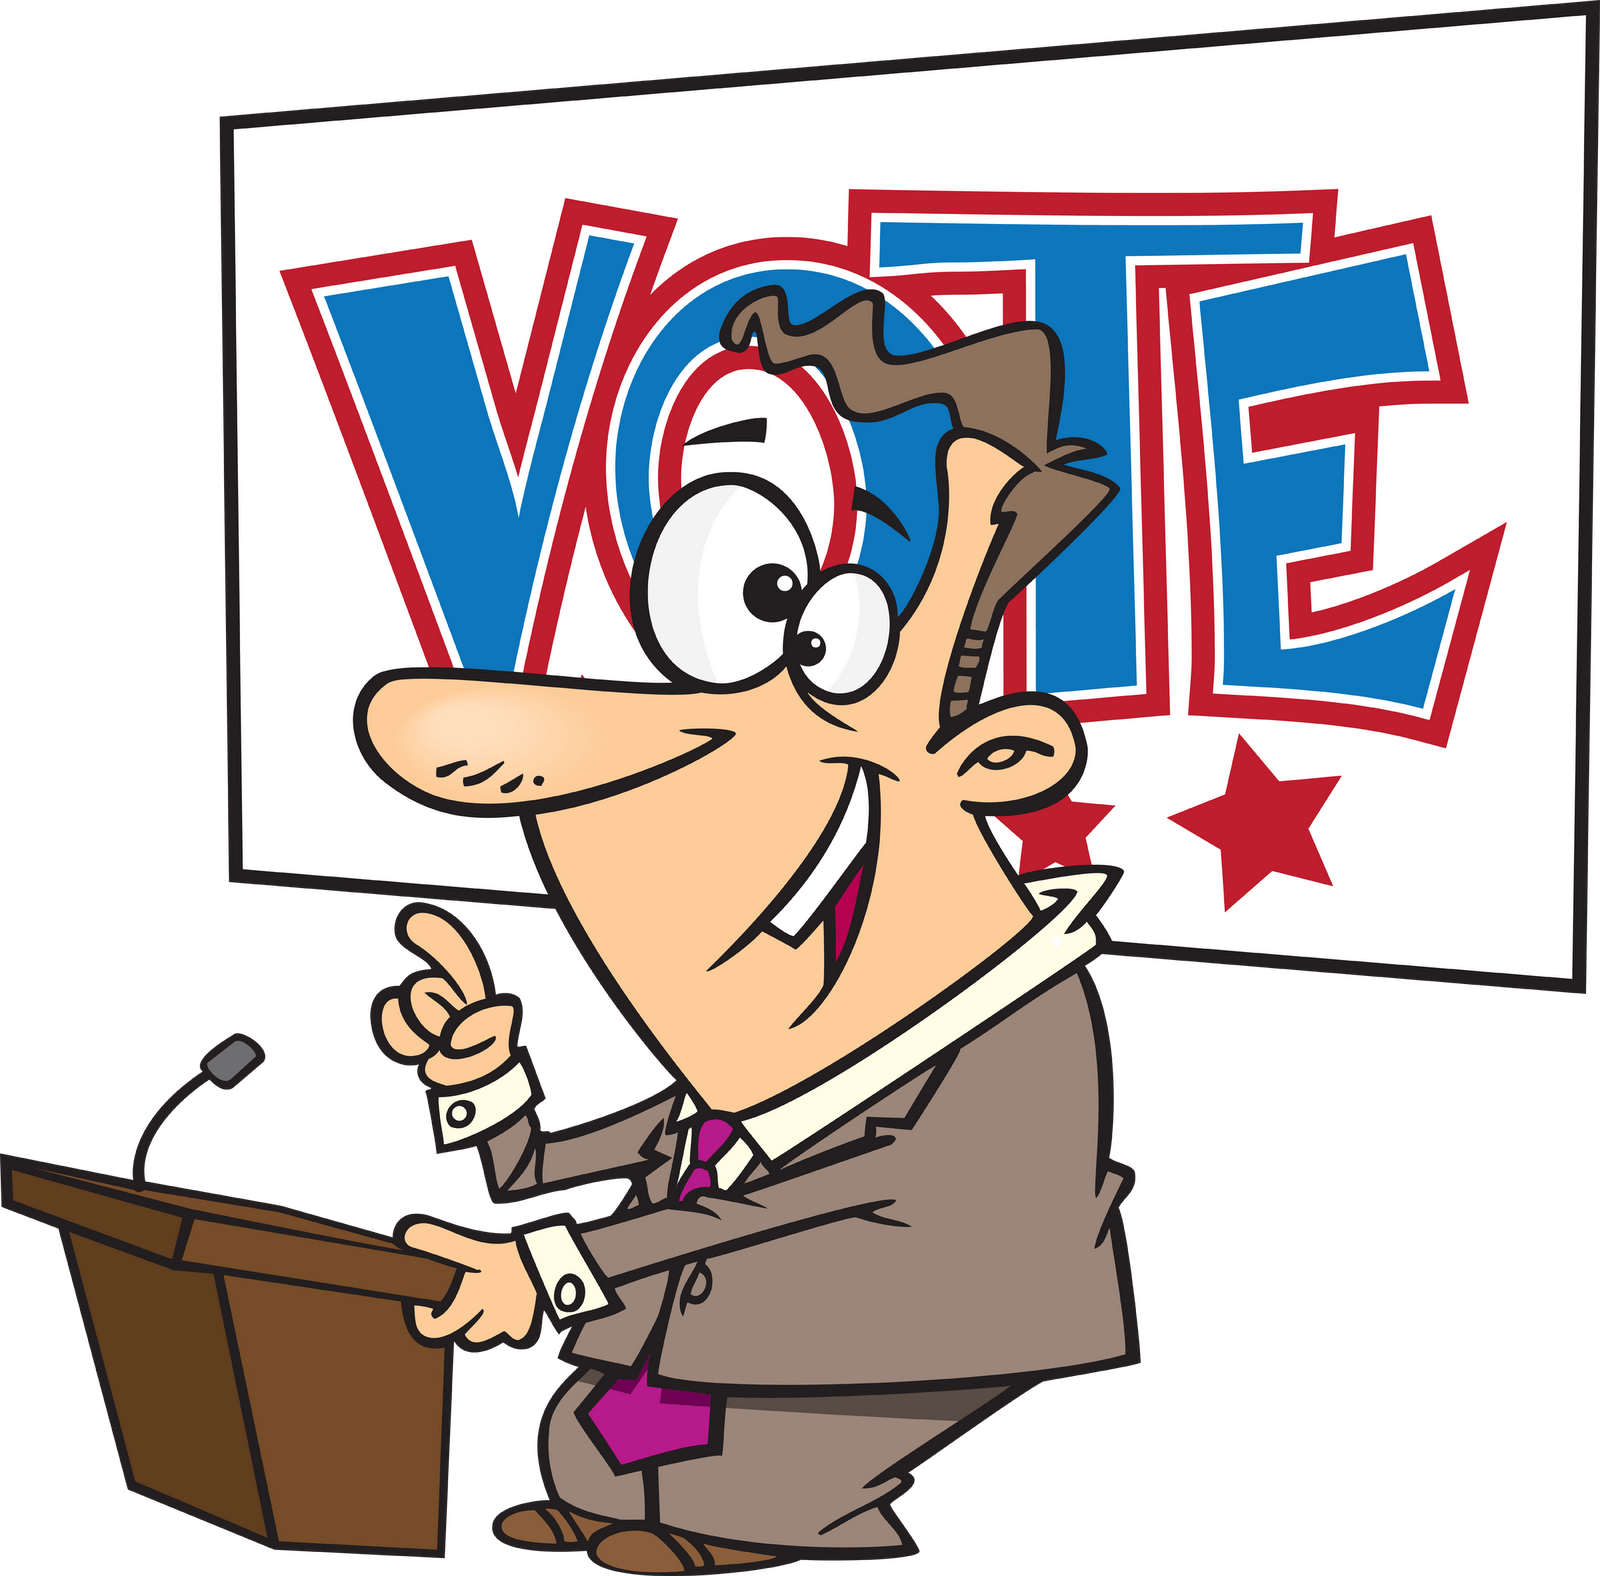 Voting clipart election campaign. Image group school cliparts